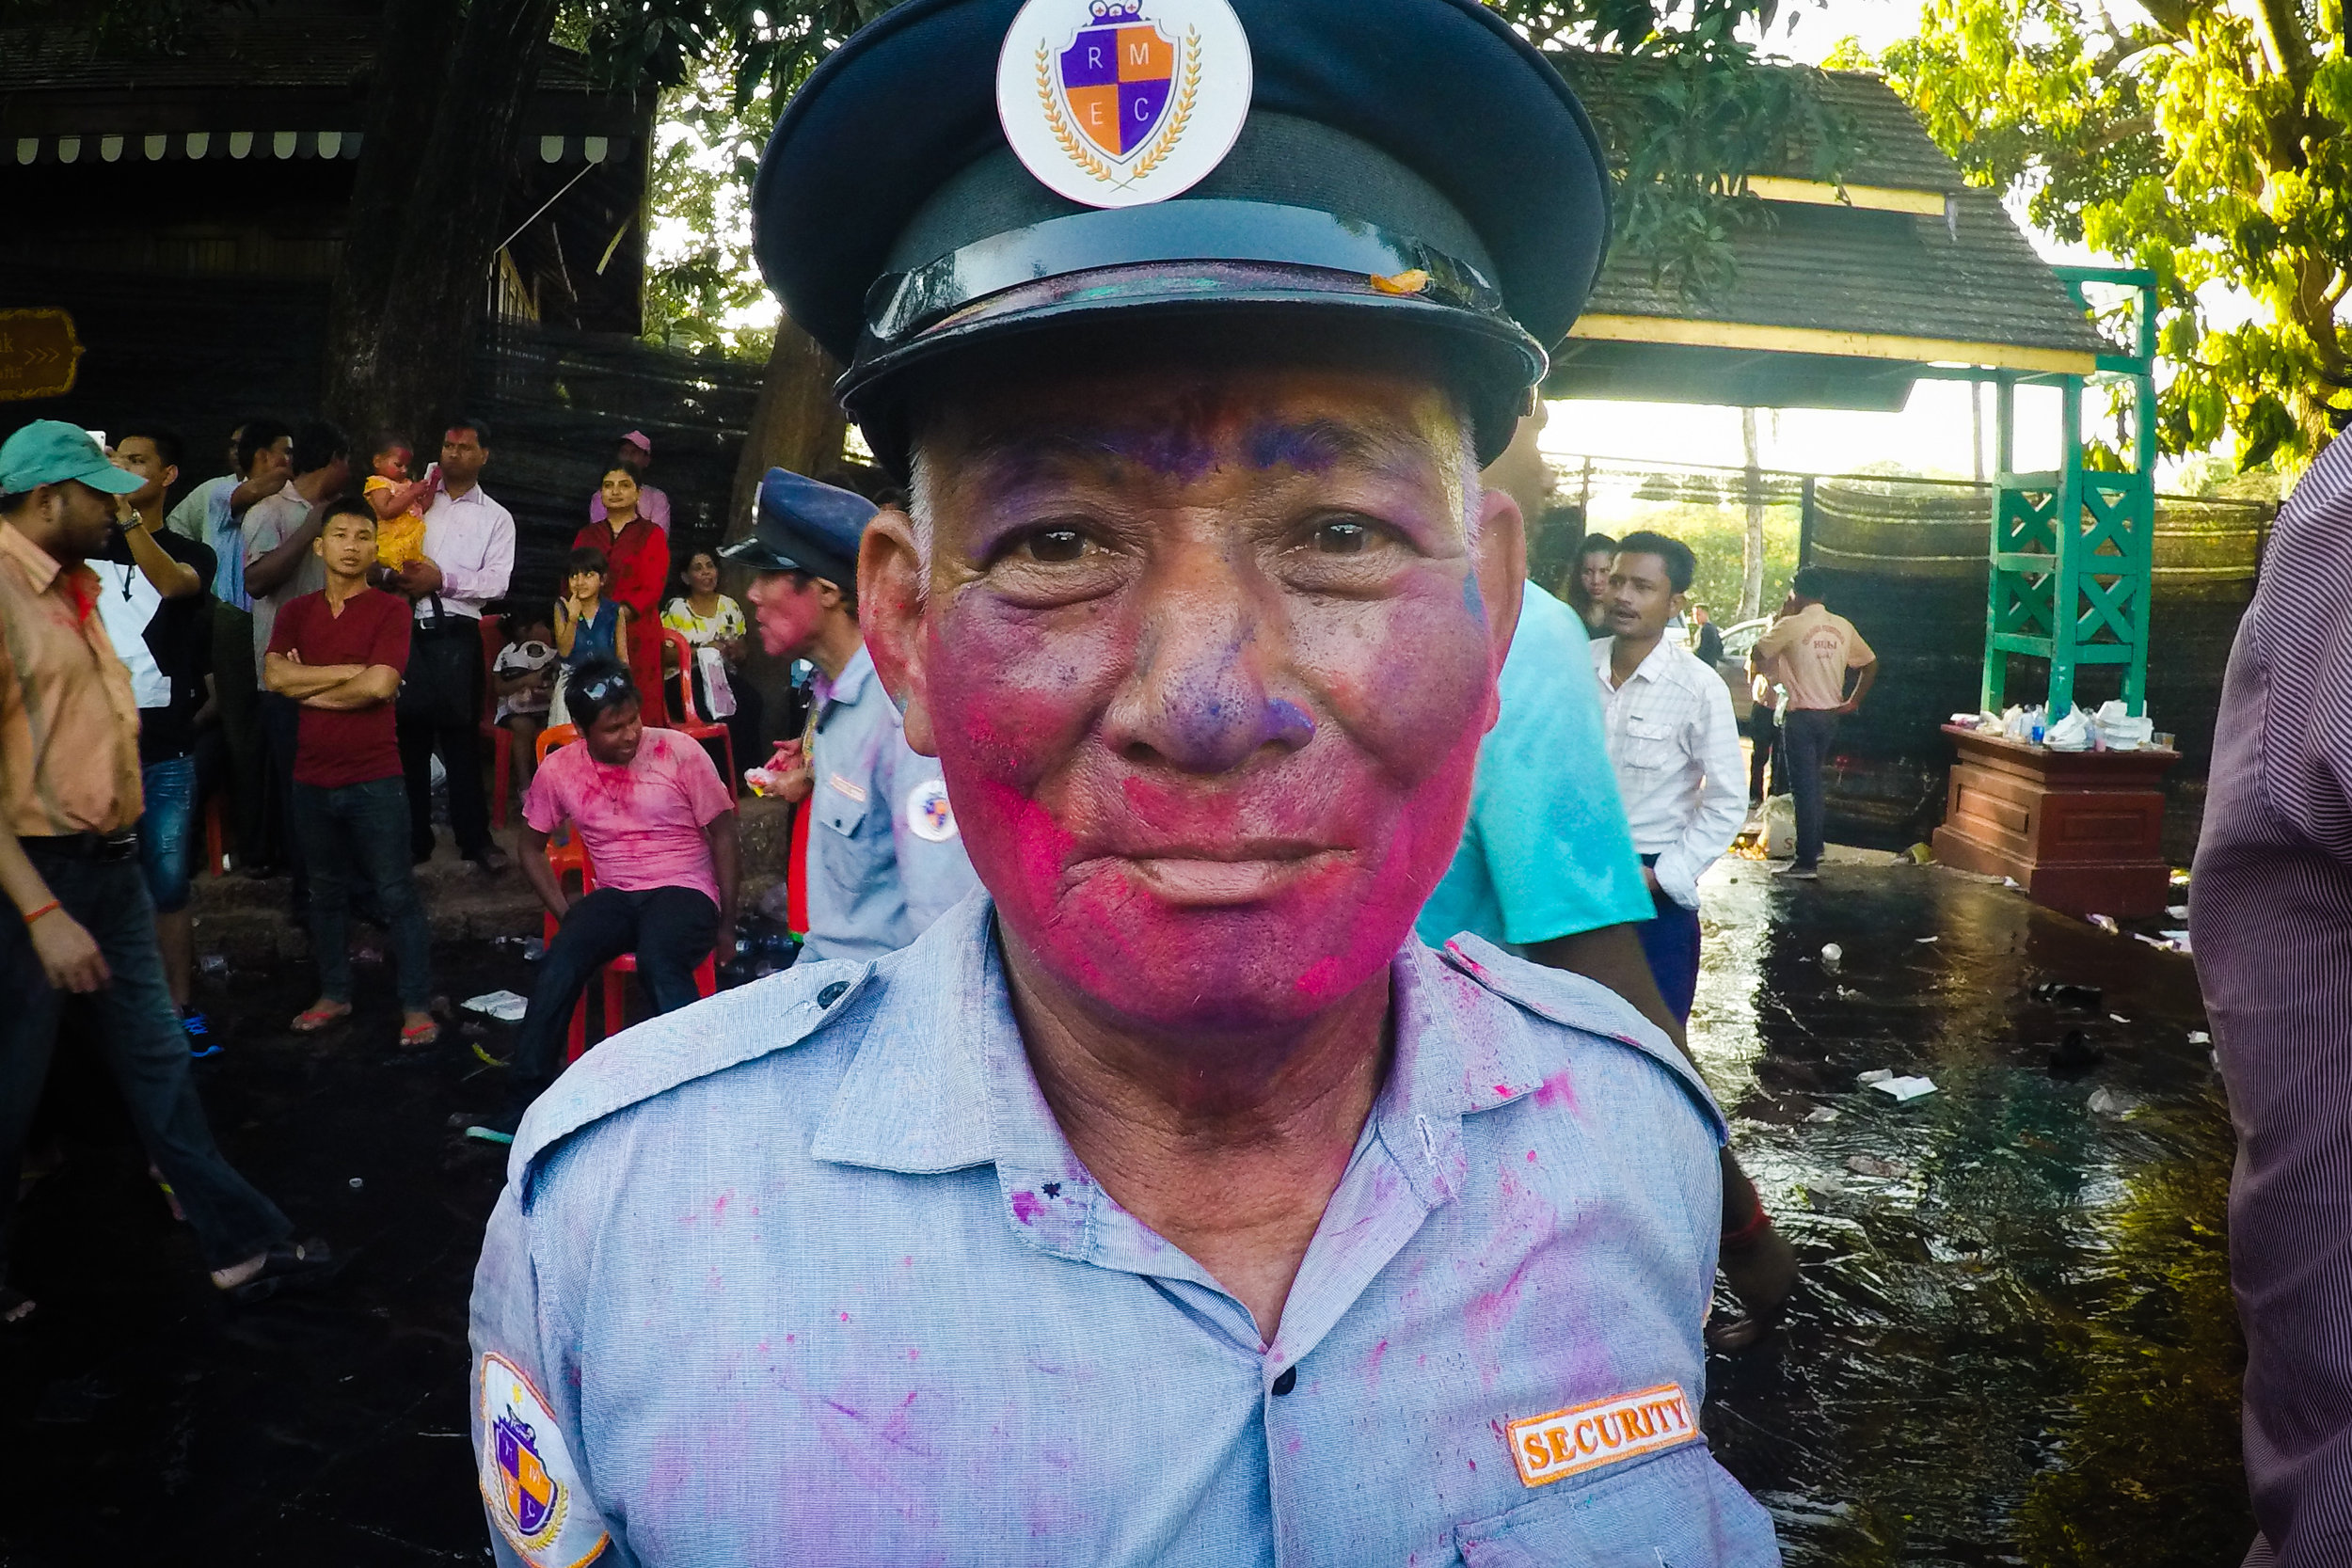 Even the security guards weren't safe from paint at the 2017 Holi celebration in Yangon. Shot using a waterproof GoPro Hero 4. Kandawgyi Lake, Yangon.